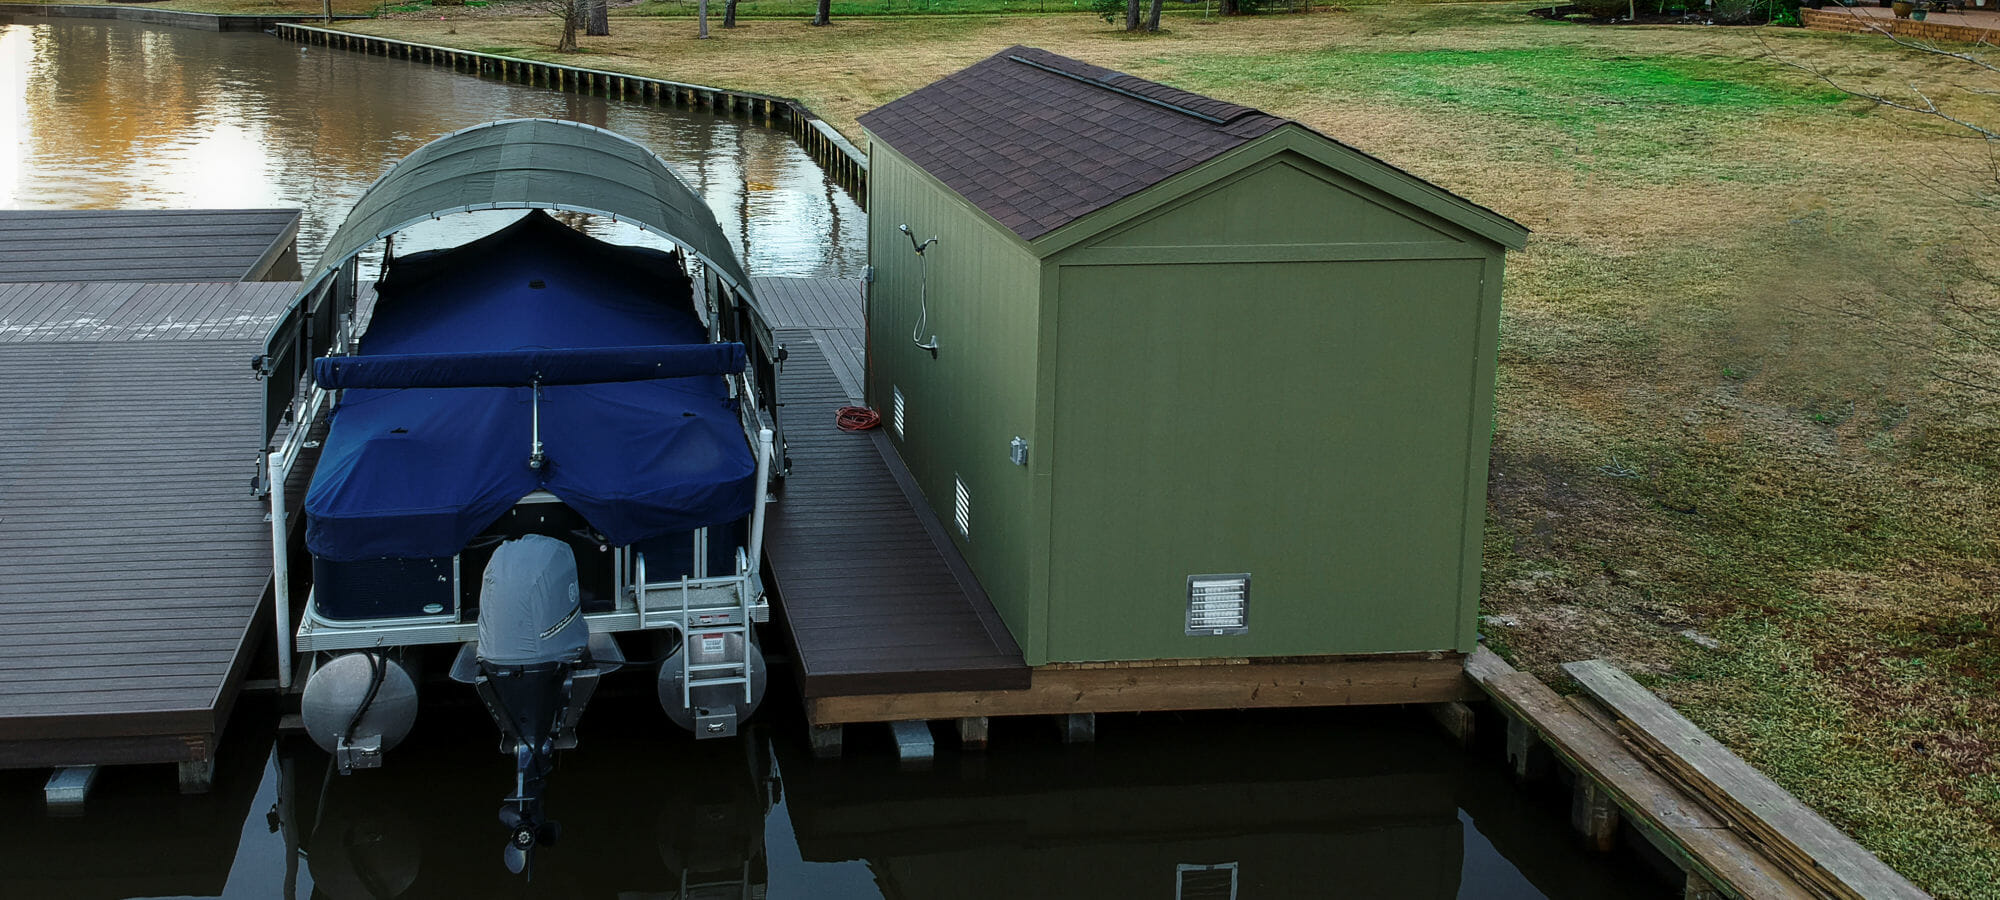 Lake Conroe Boat Dock Covers | Boat Slip Covers | SlipSki Solutions